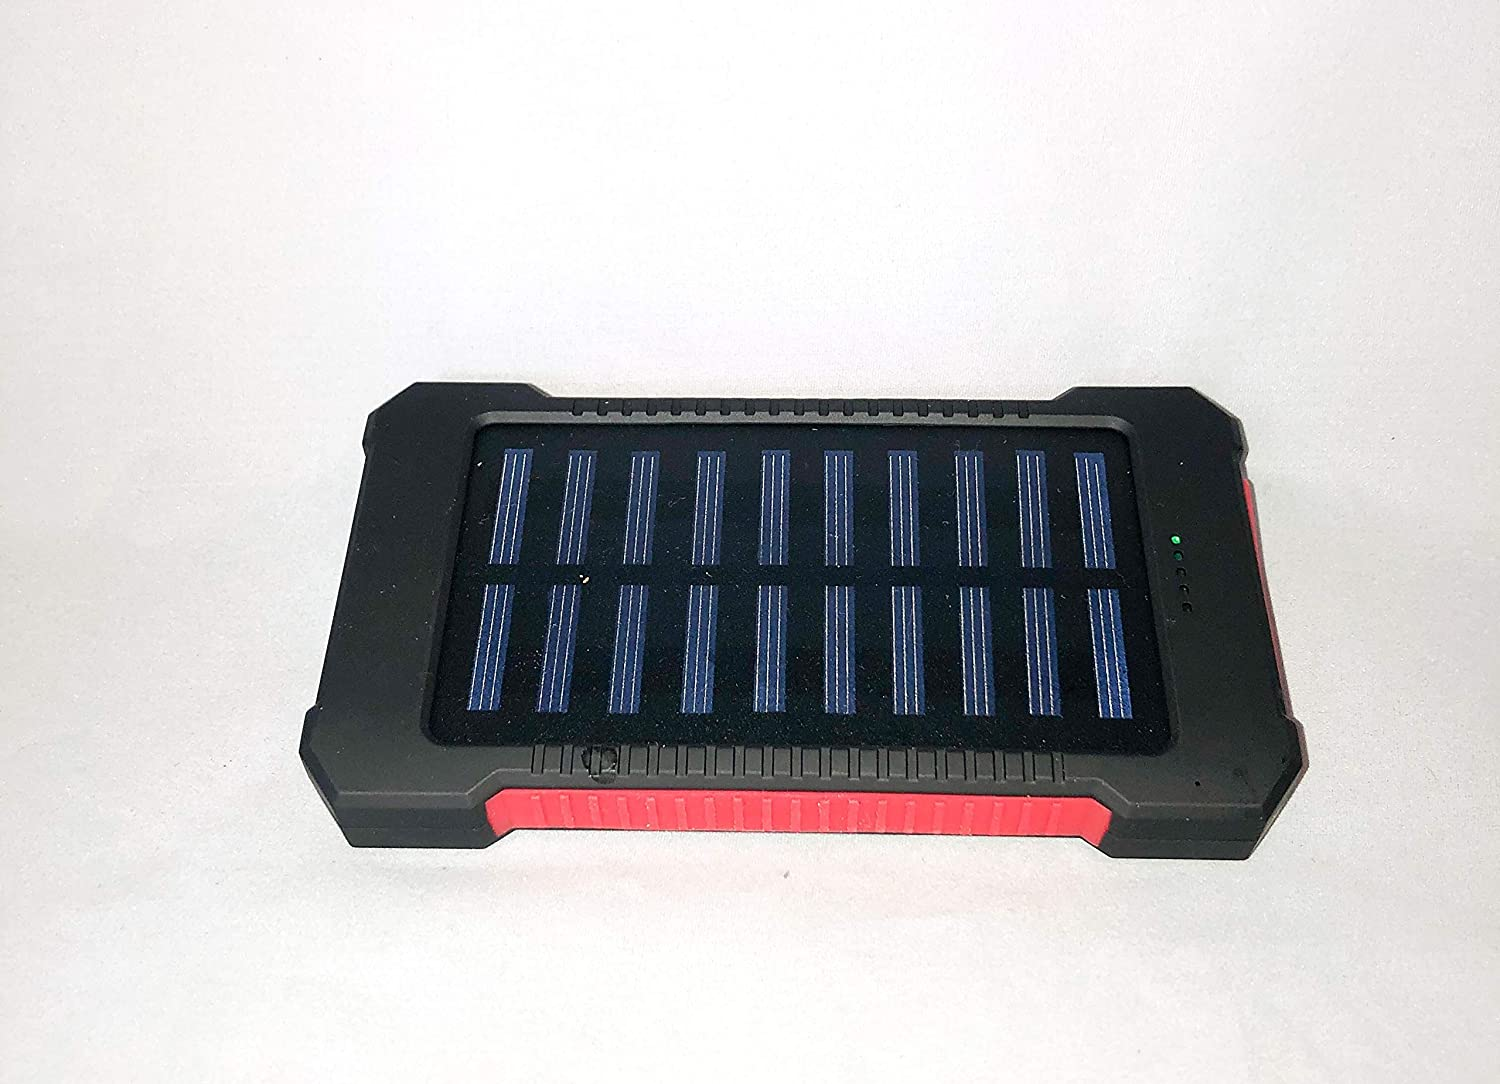 Amazon.com: 20000 Ah impermeable Cargador Solar: Cell Phones ...